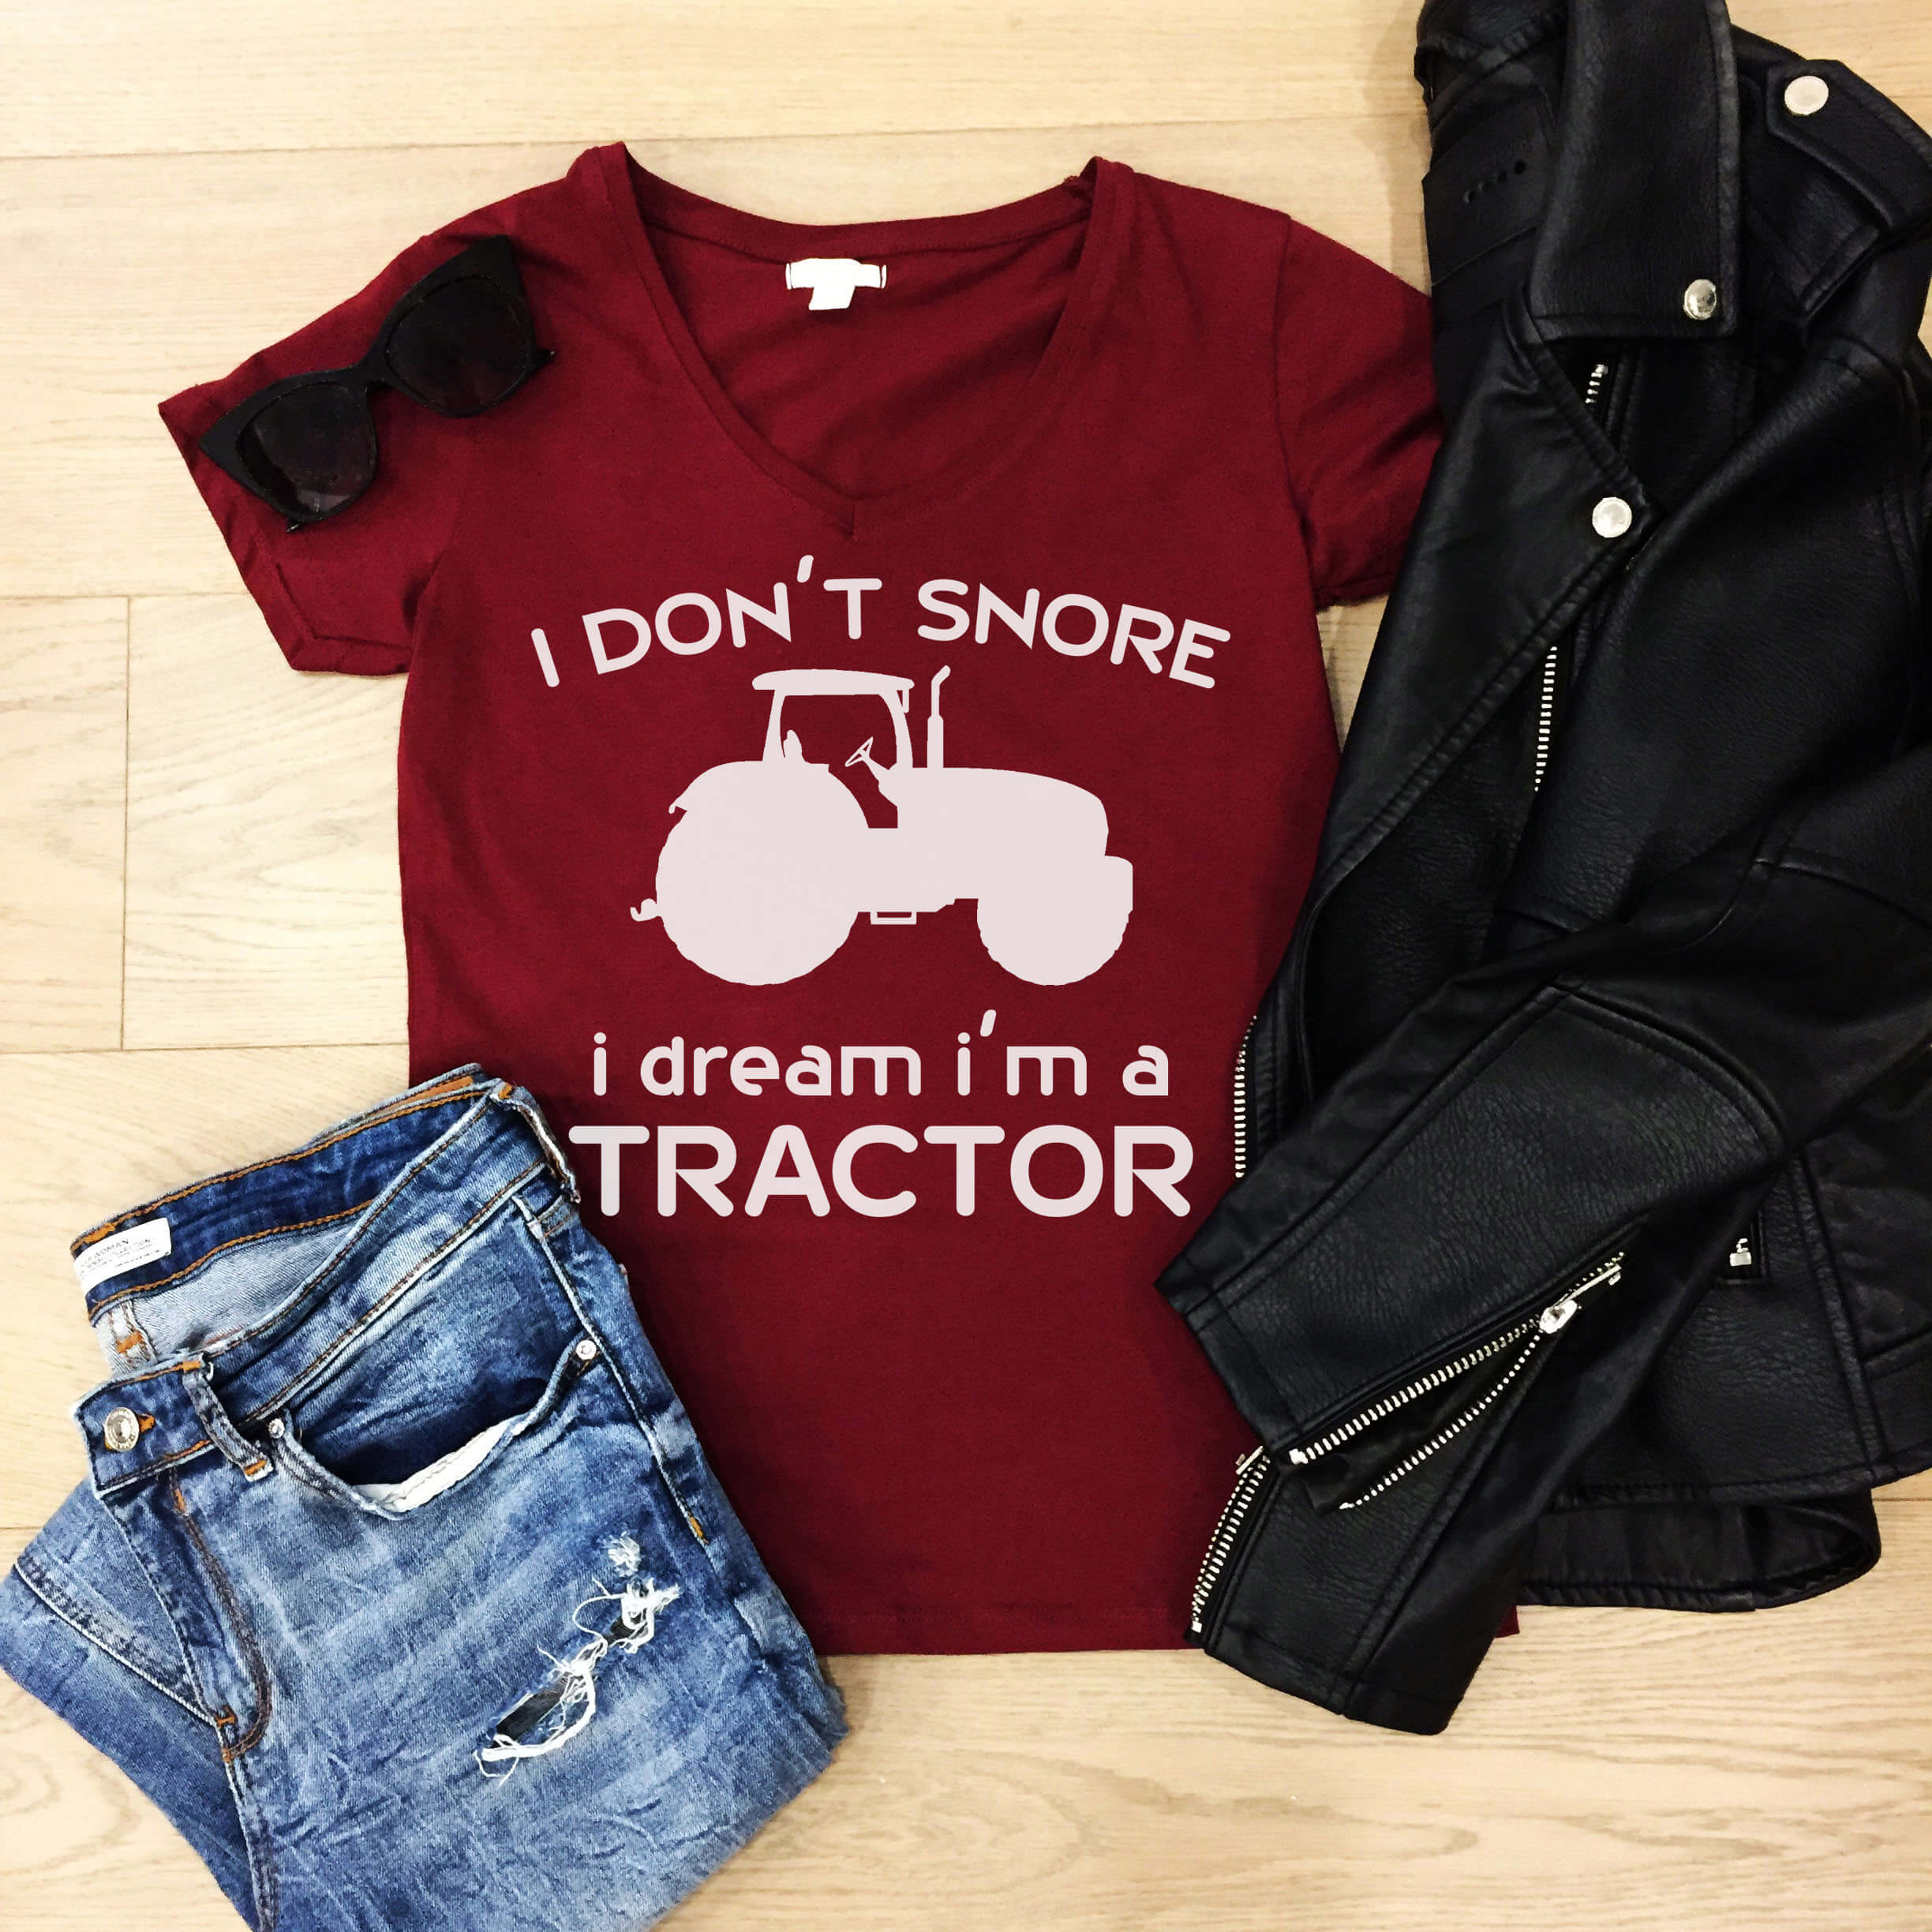 Free Snore Like a Tractor SVG File